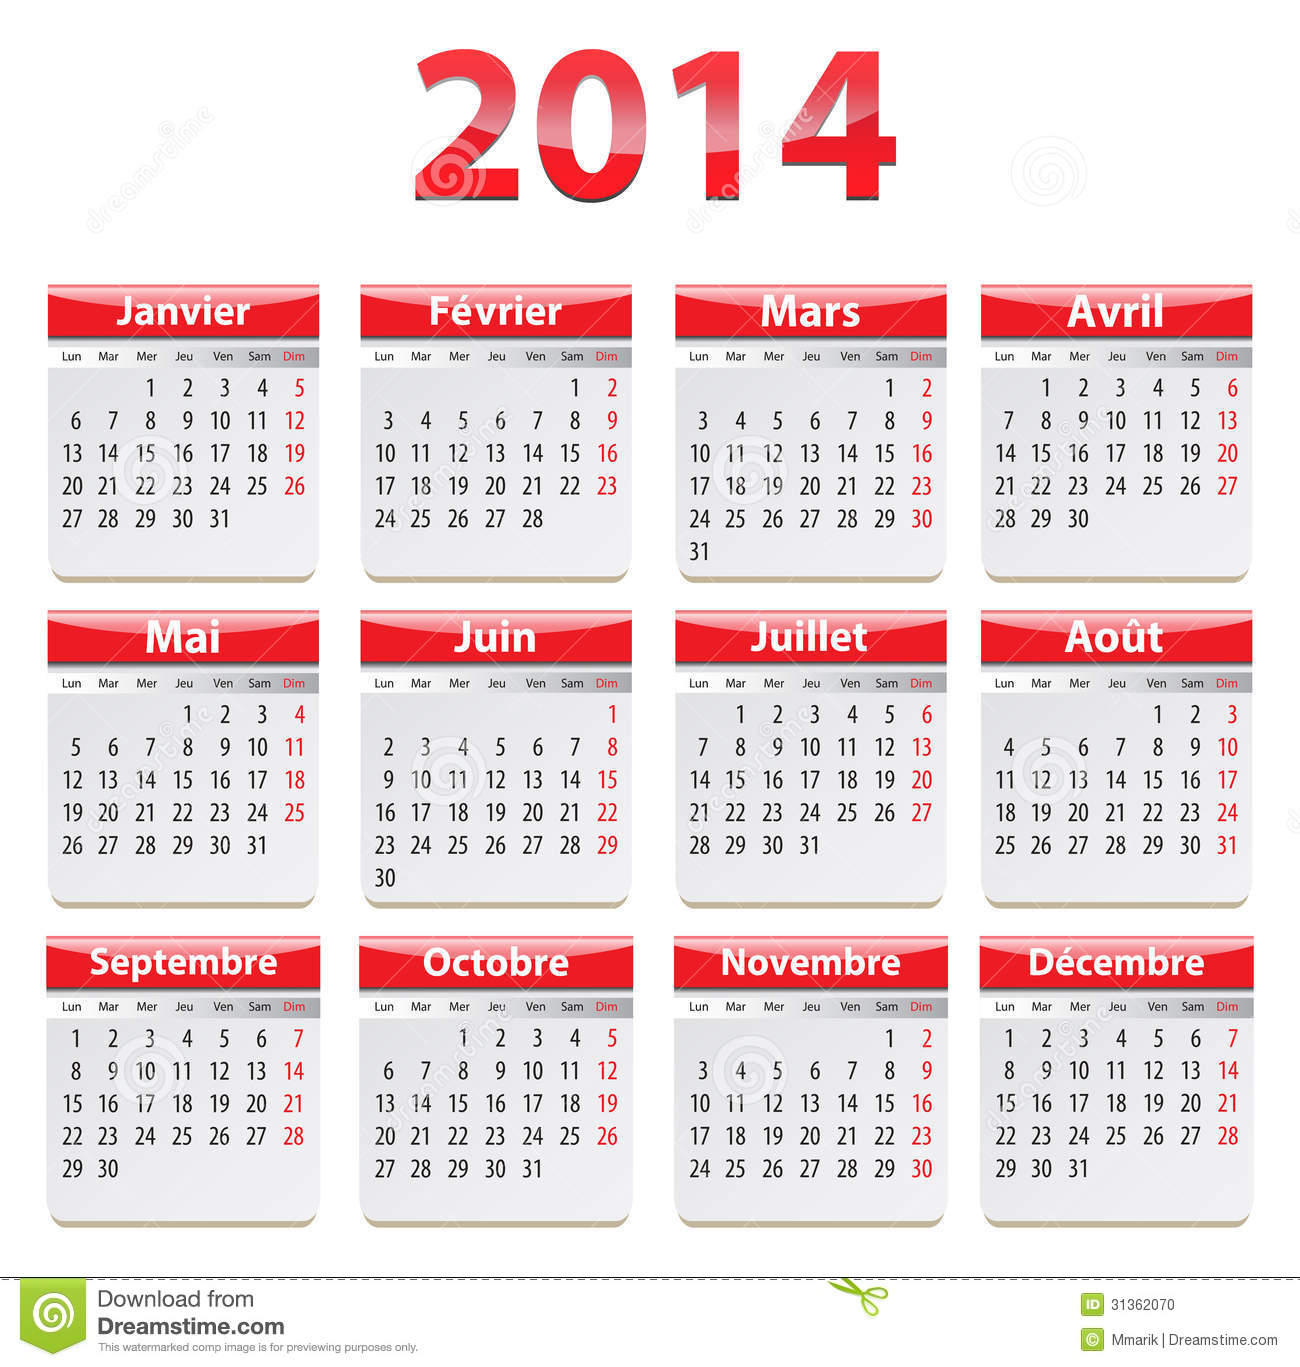 2014 franse kalender vector illustratie illustratie